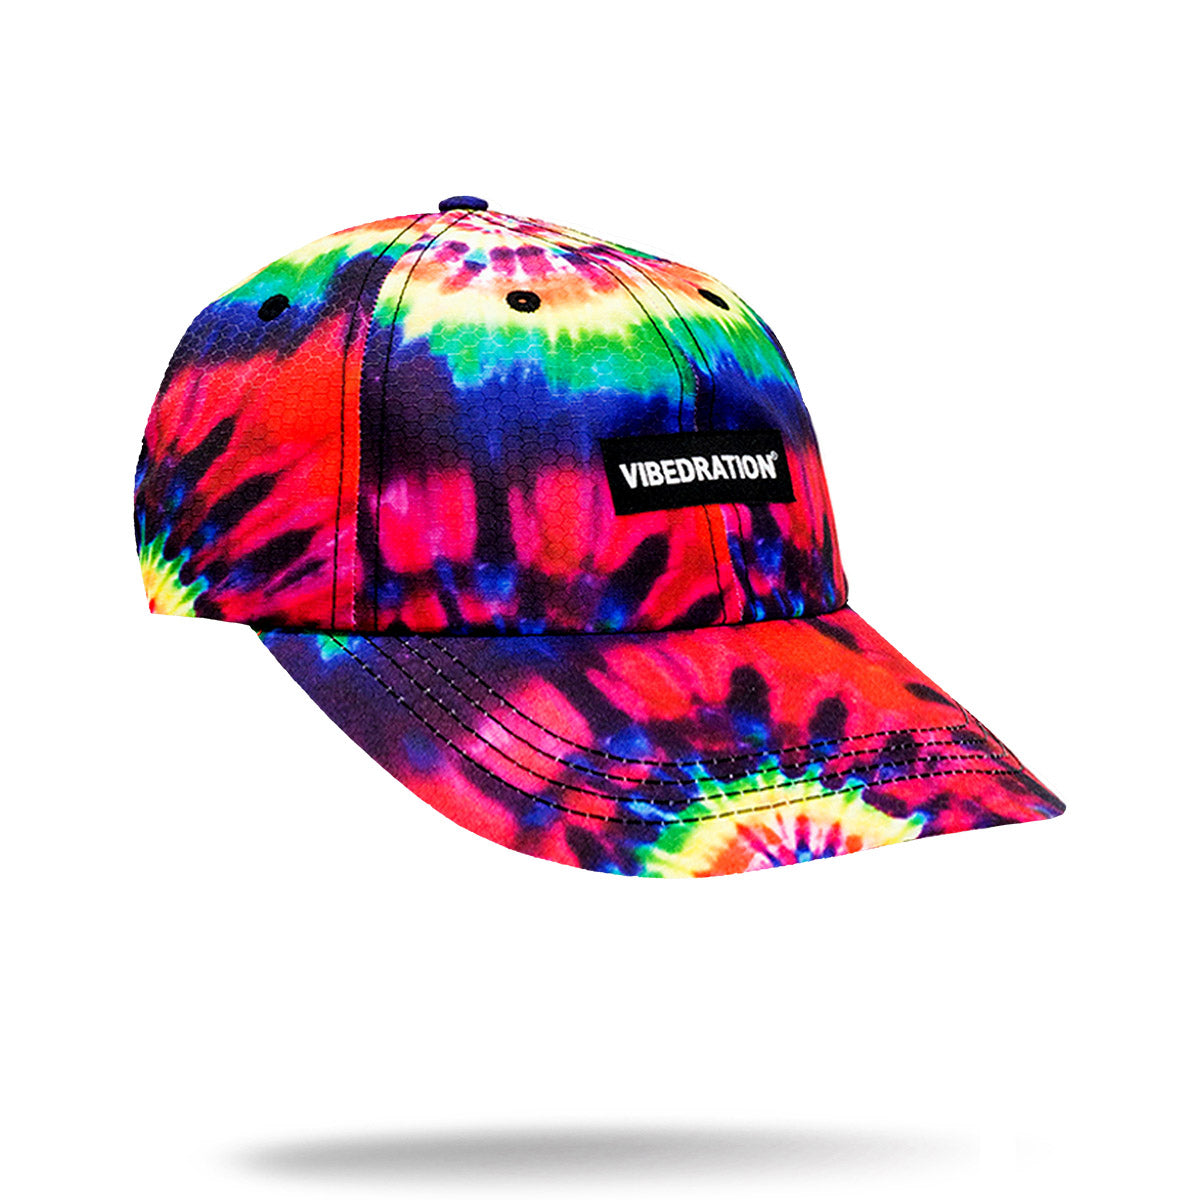 Red Yellow and Blue printed tie-dye hat